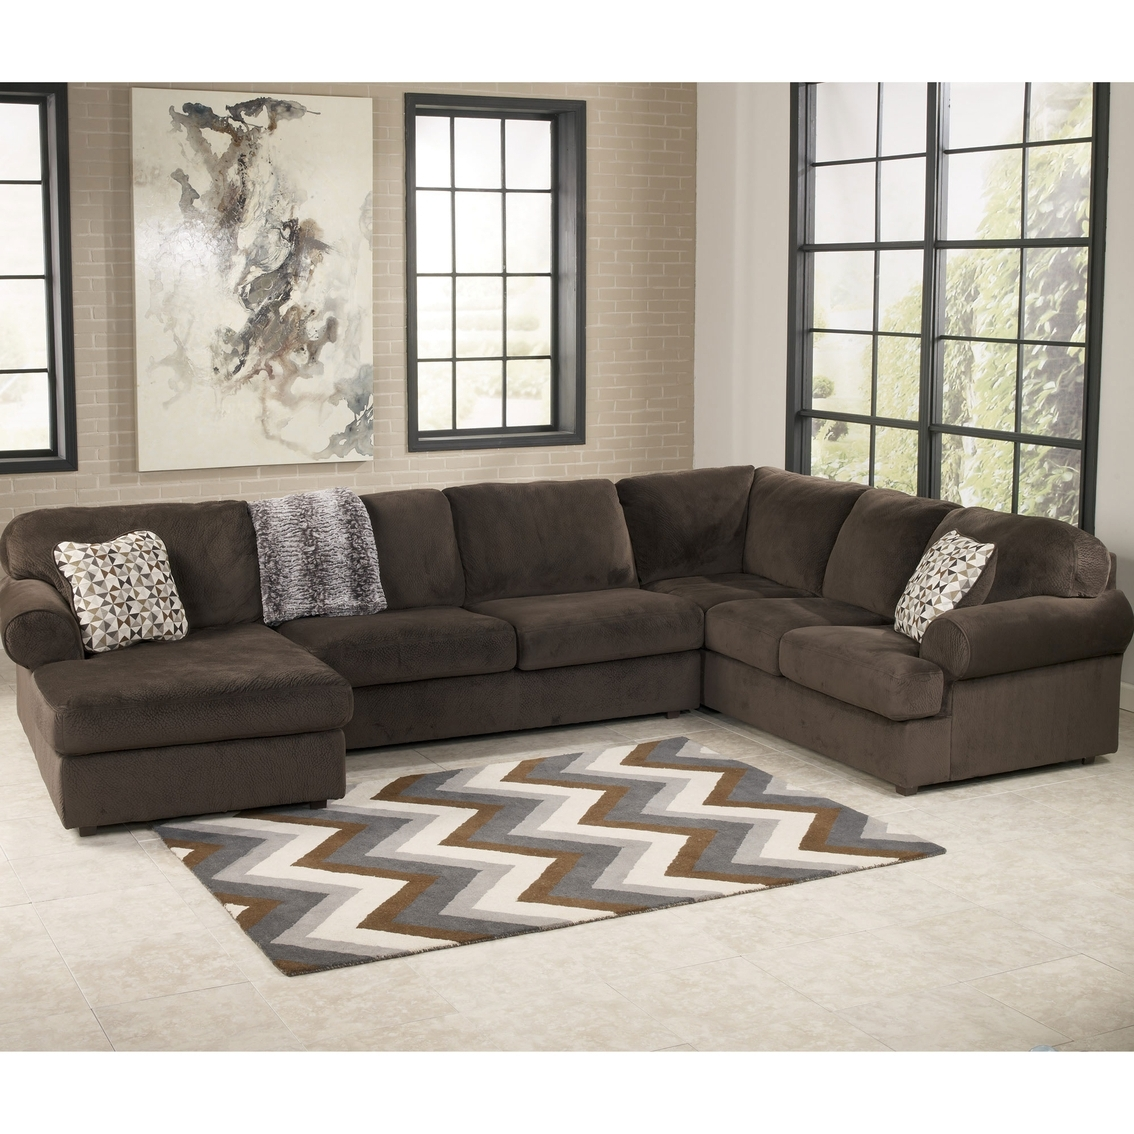 Austin Sectional Sofas Intended For 2019 Signature Designashley Jessa Place 3 Pc (View 3 of 20)